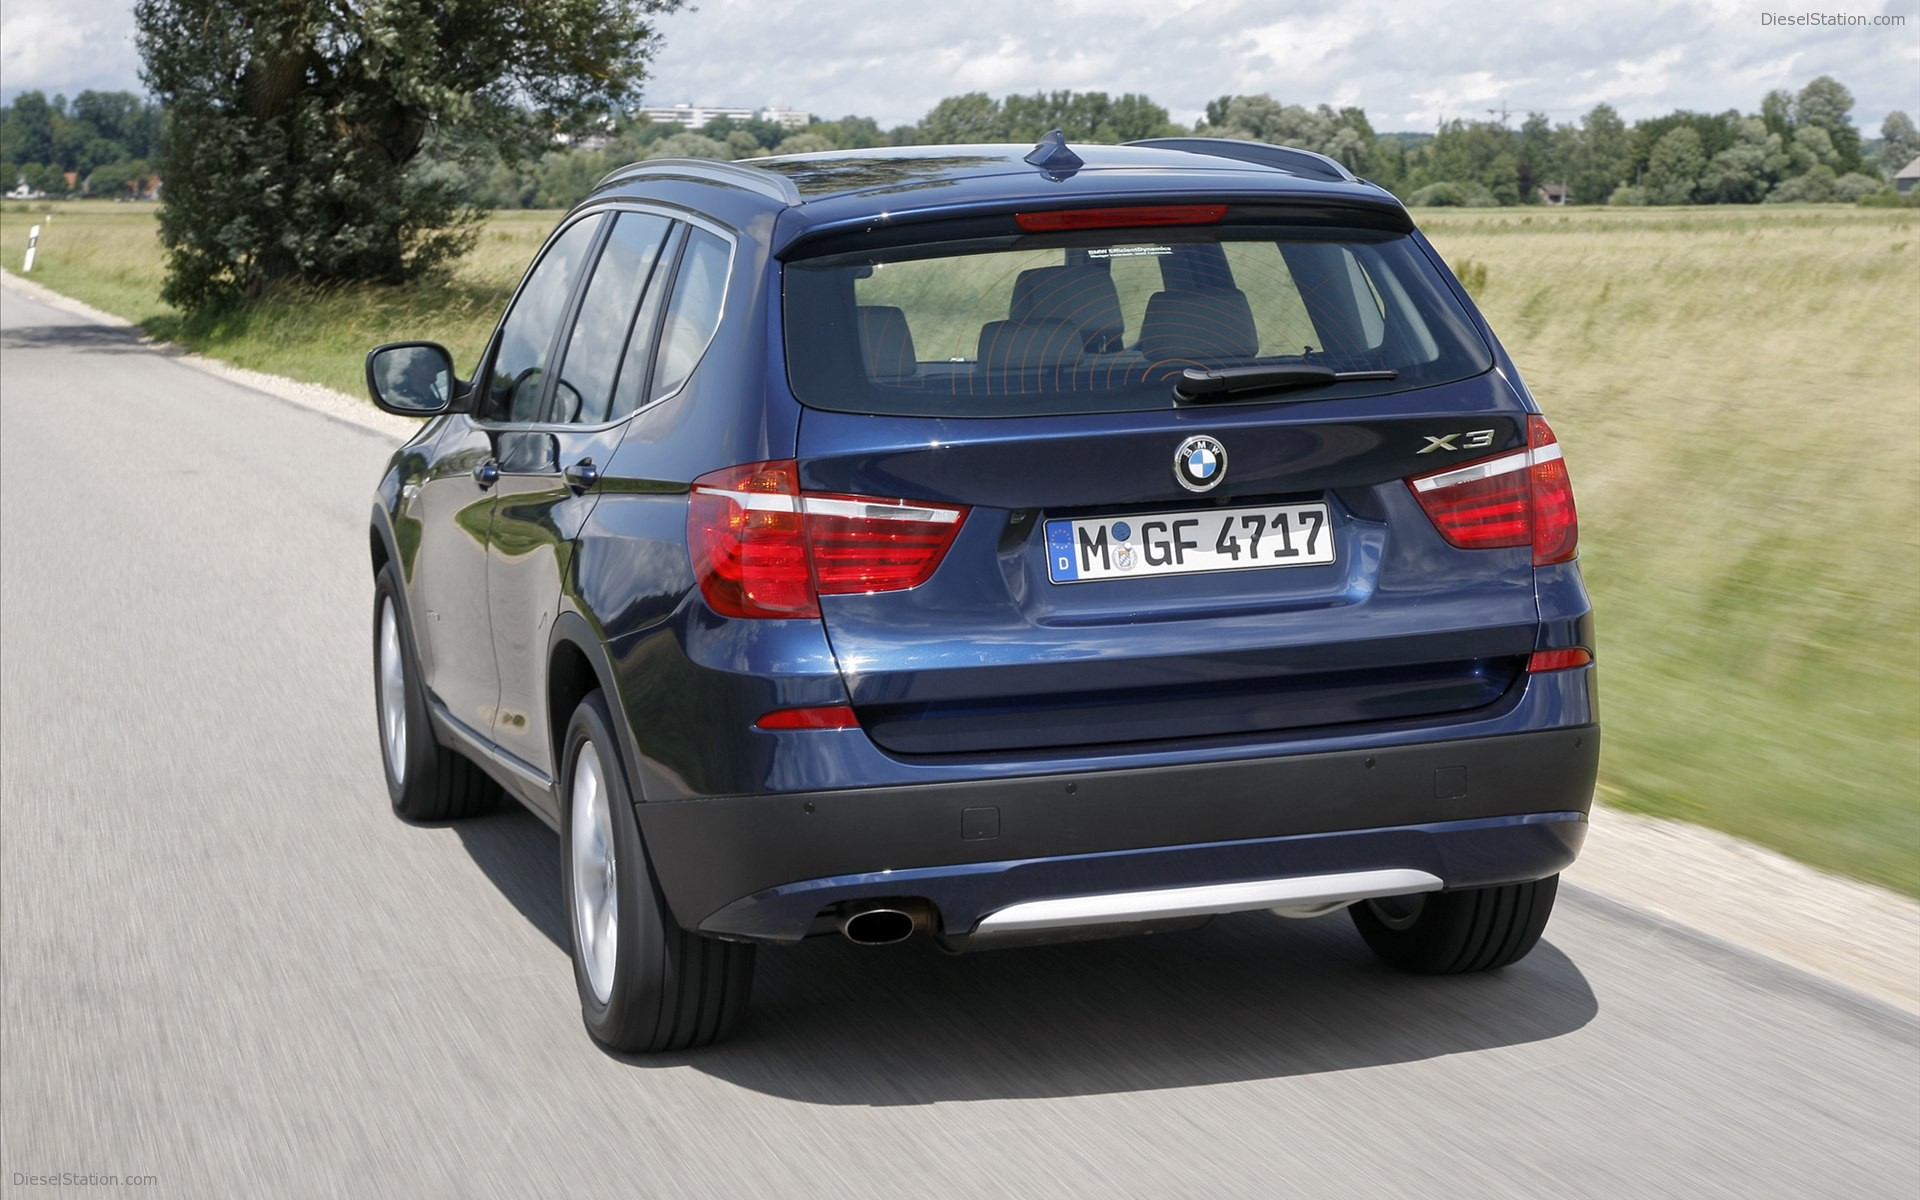 BMW X3 sDrive20i 2012 photo - 8